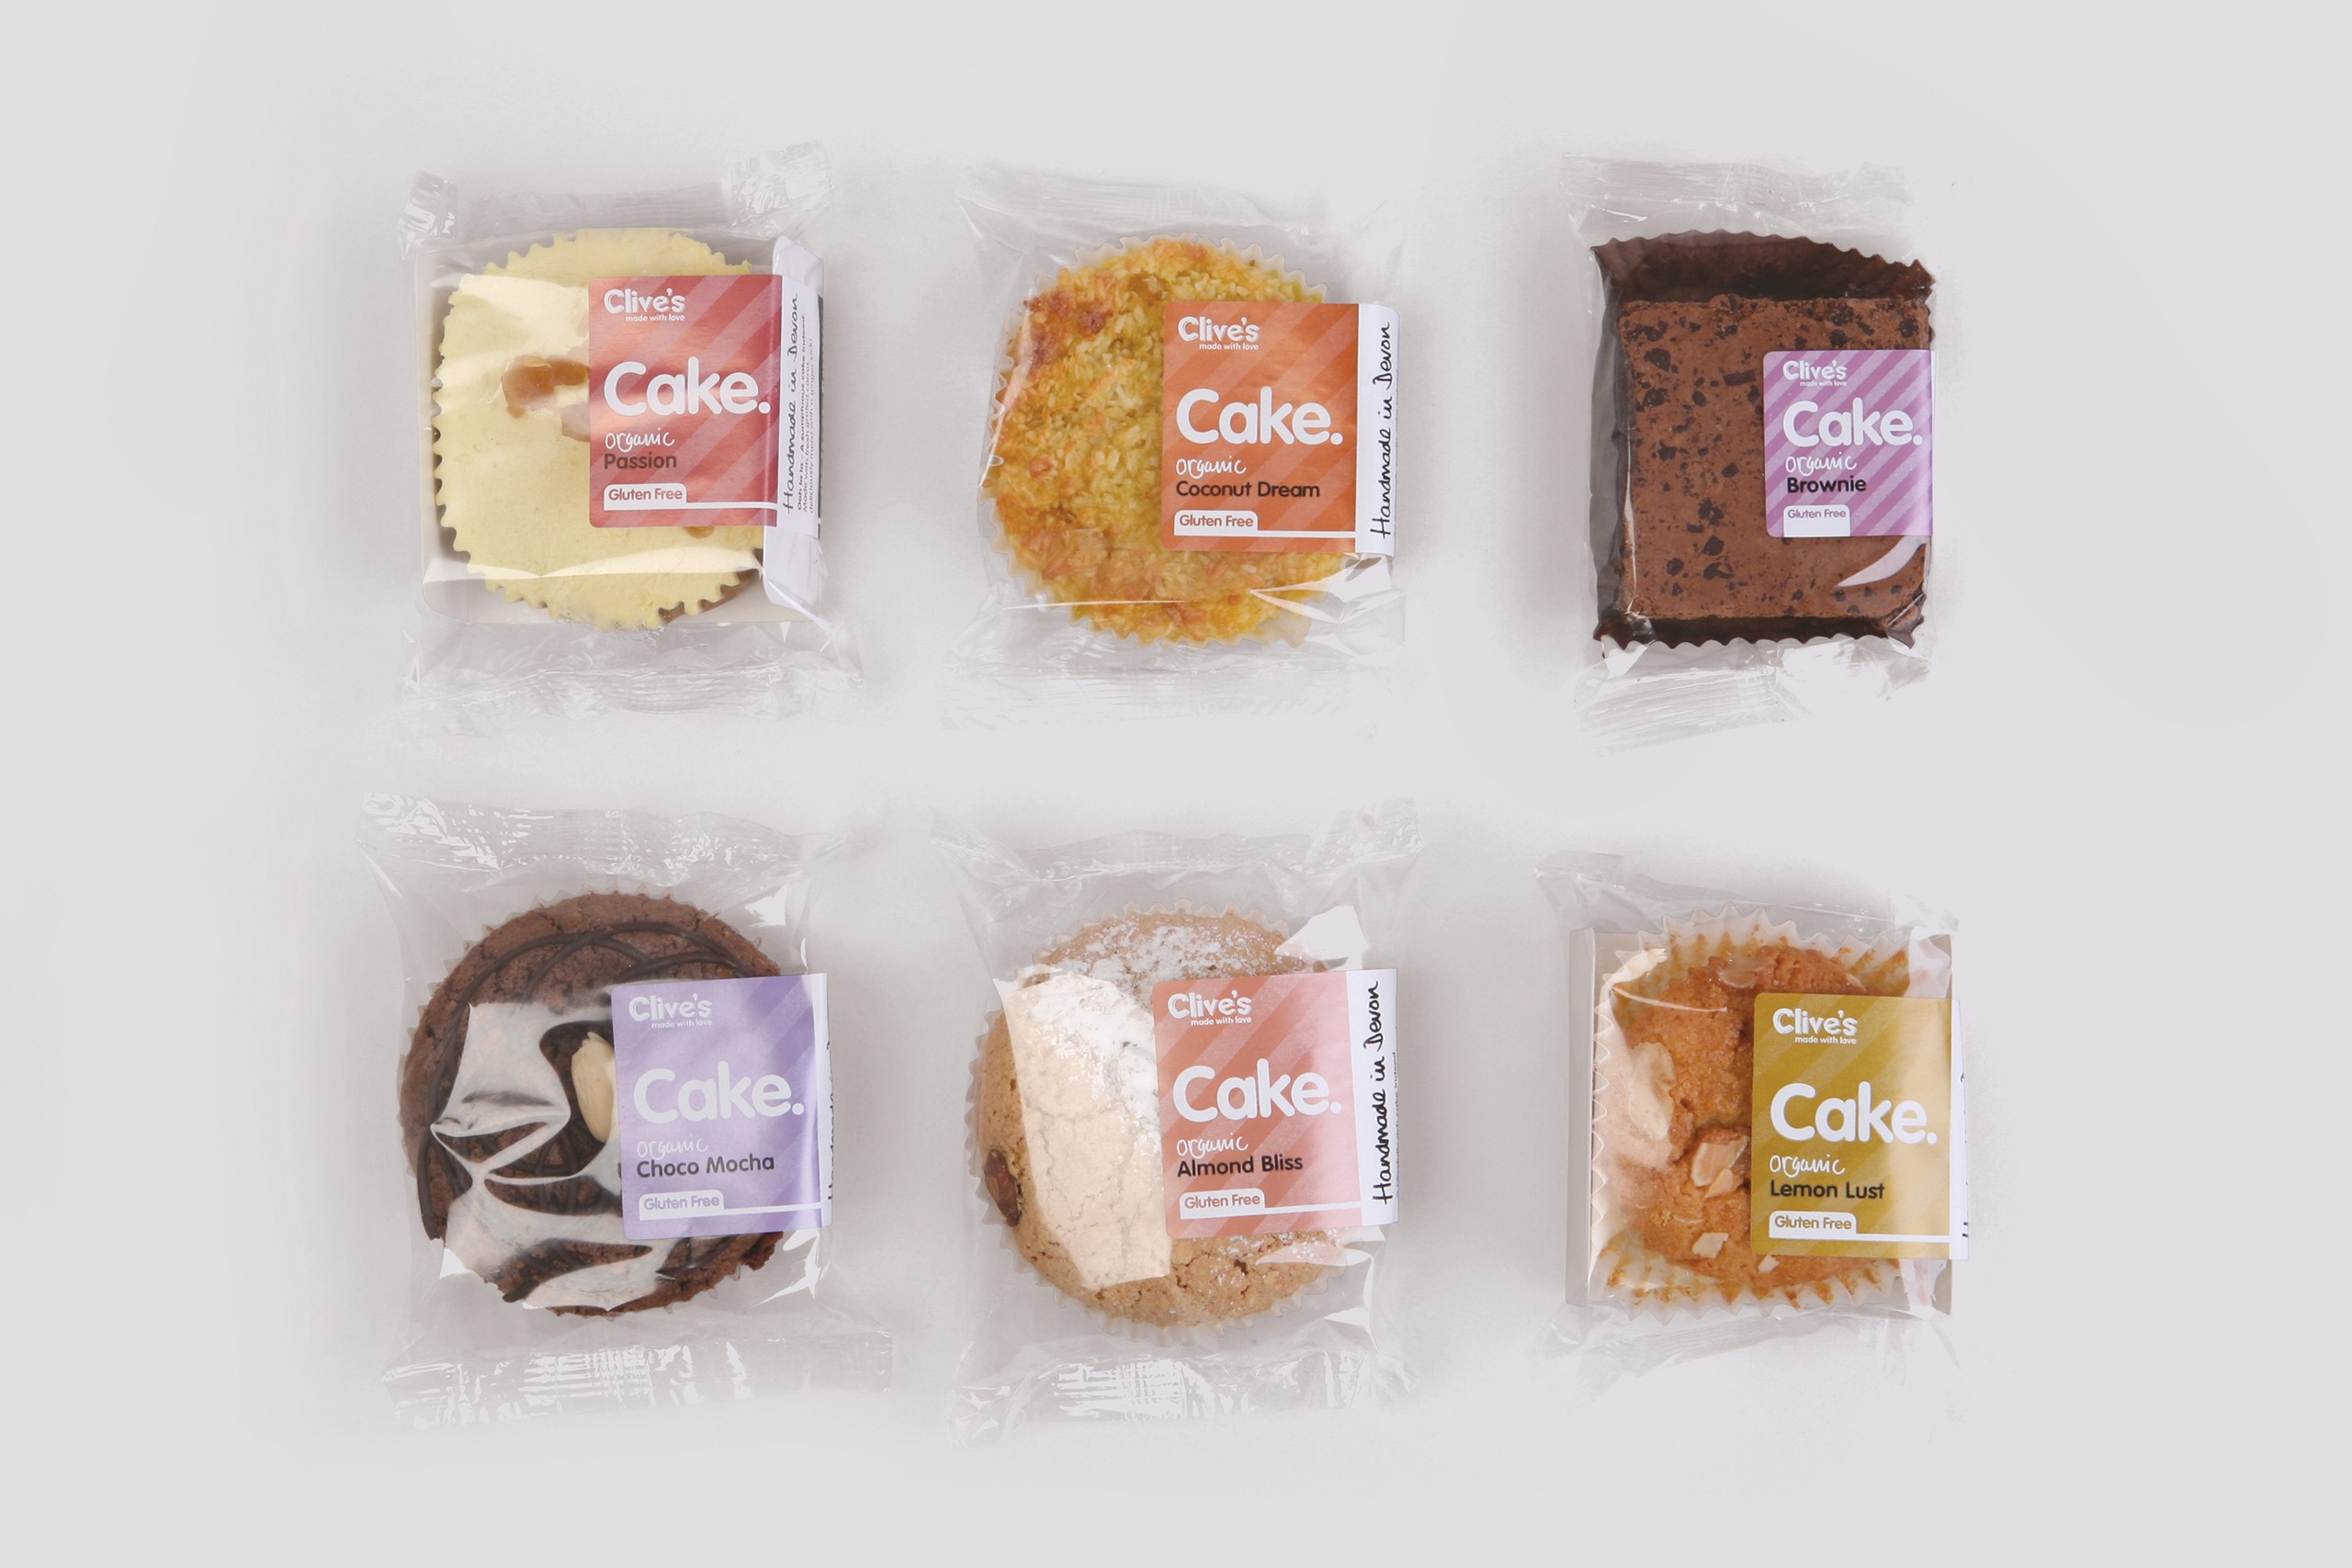 Clive's - Brand identity & packaging